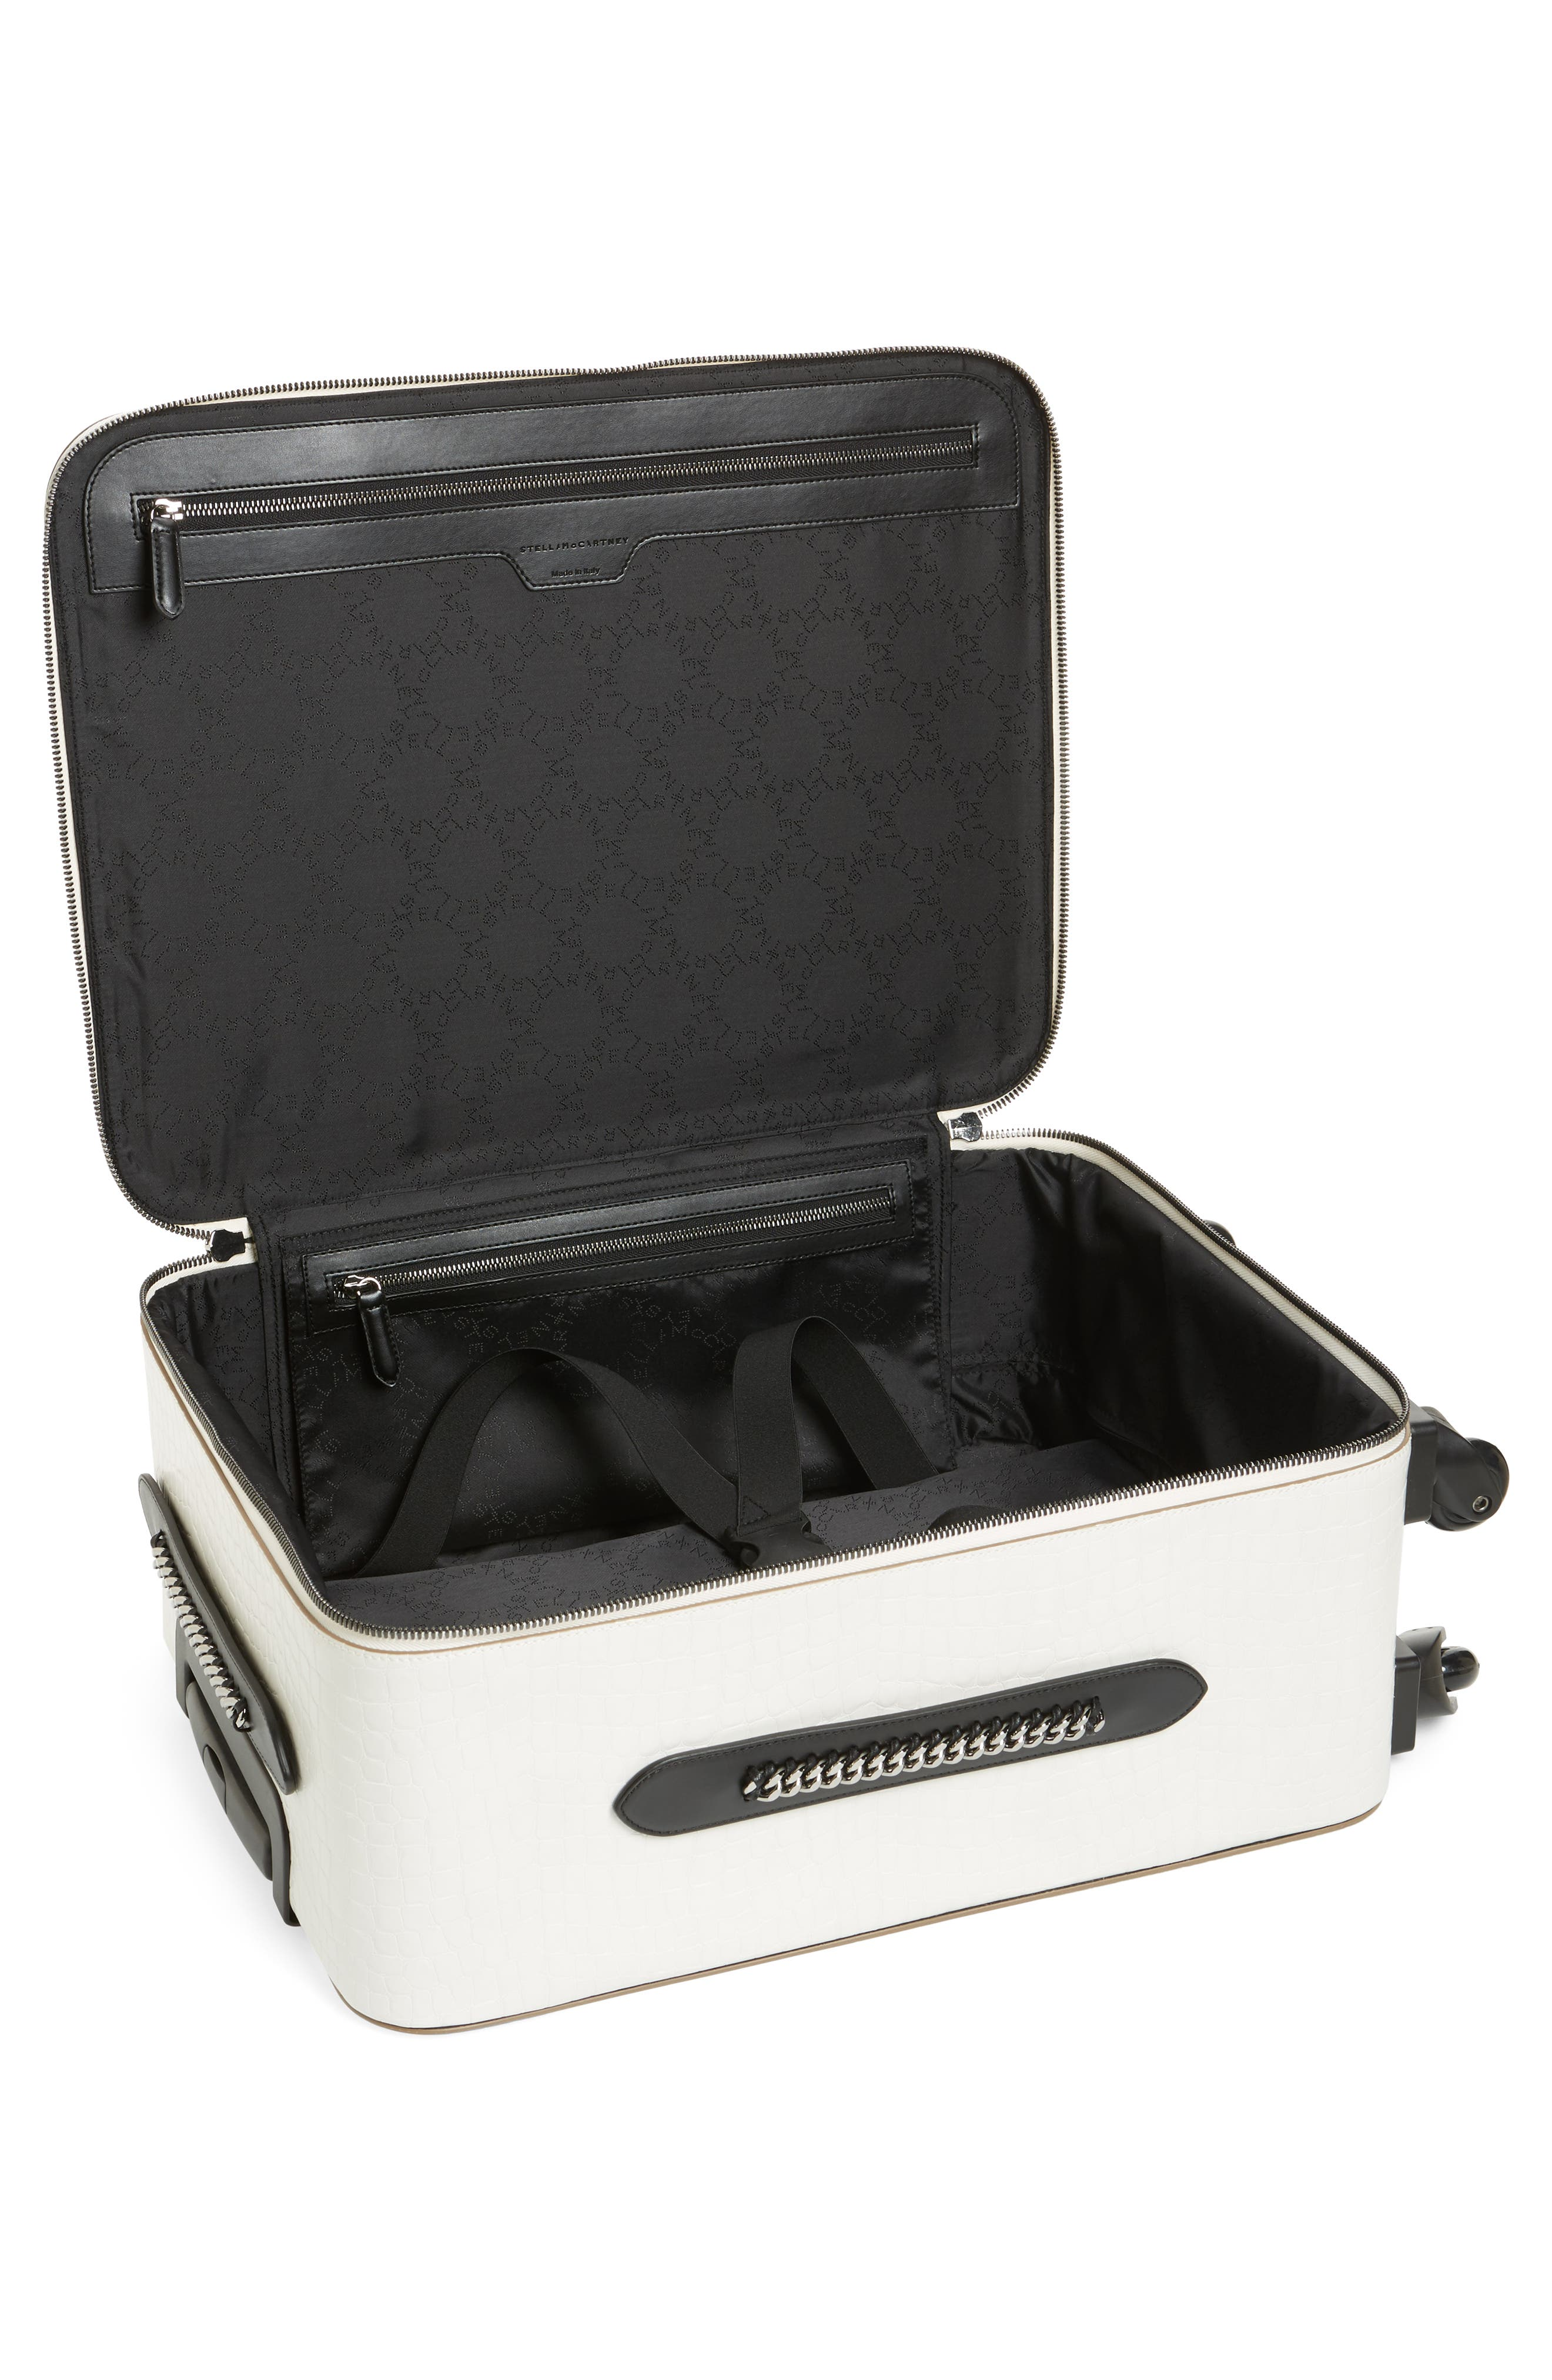 20-Inch Alter Croc Faux Leather Trolley Case,                             Alternate thumbnail 2, color,                             Ivory